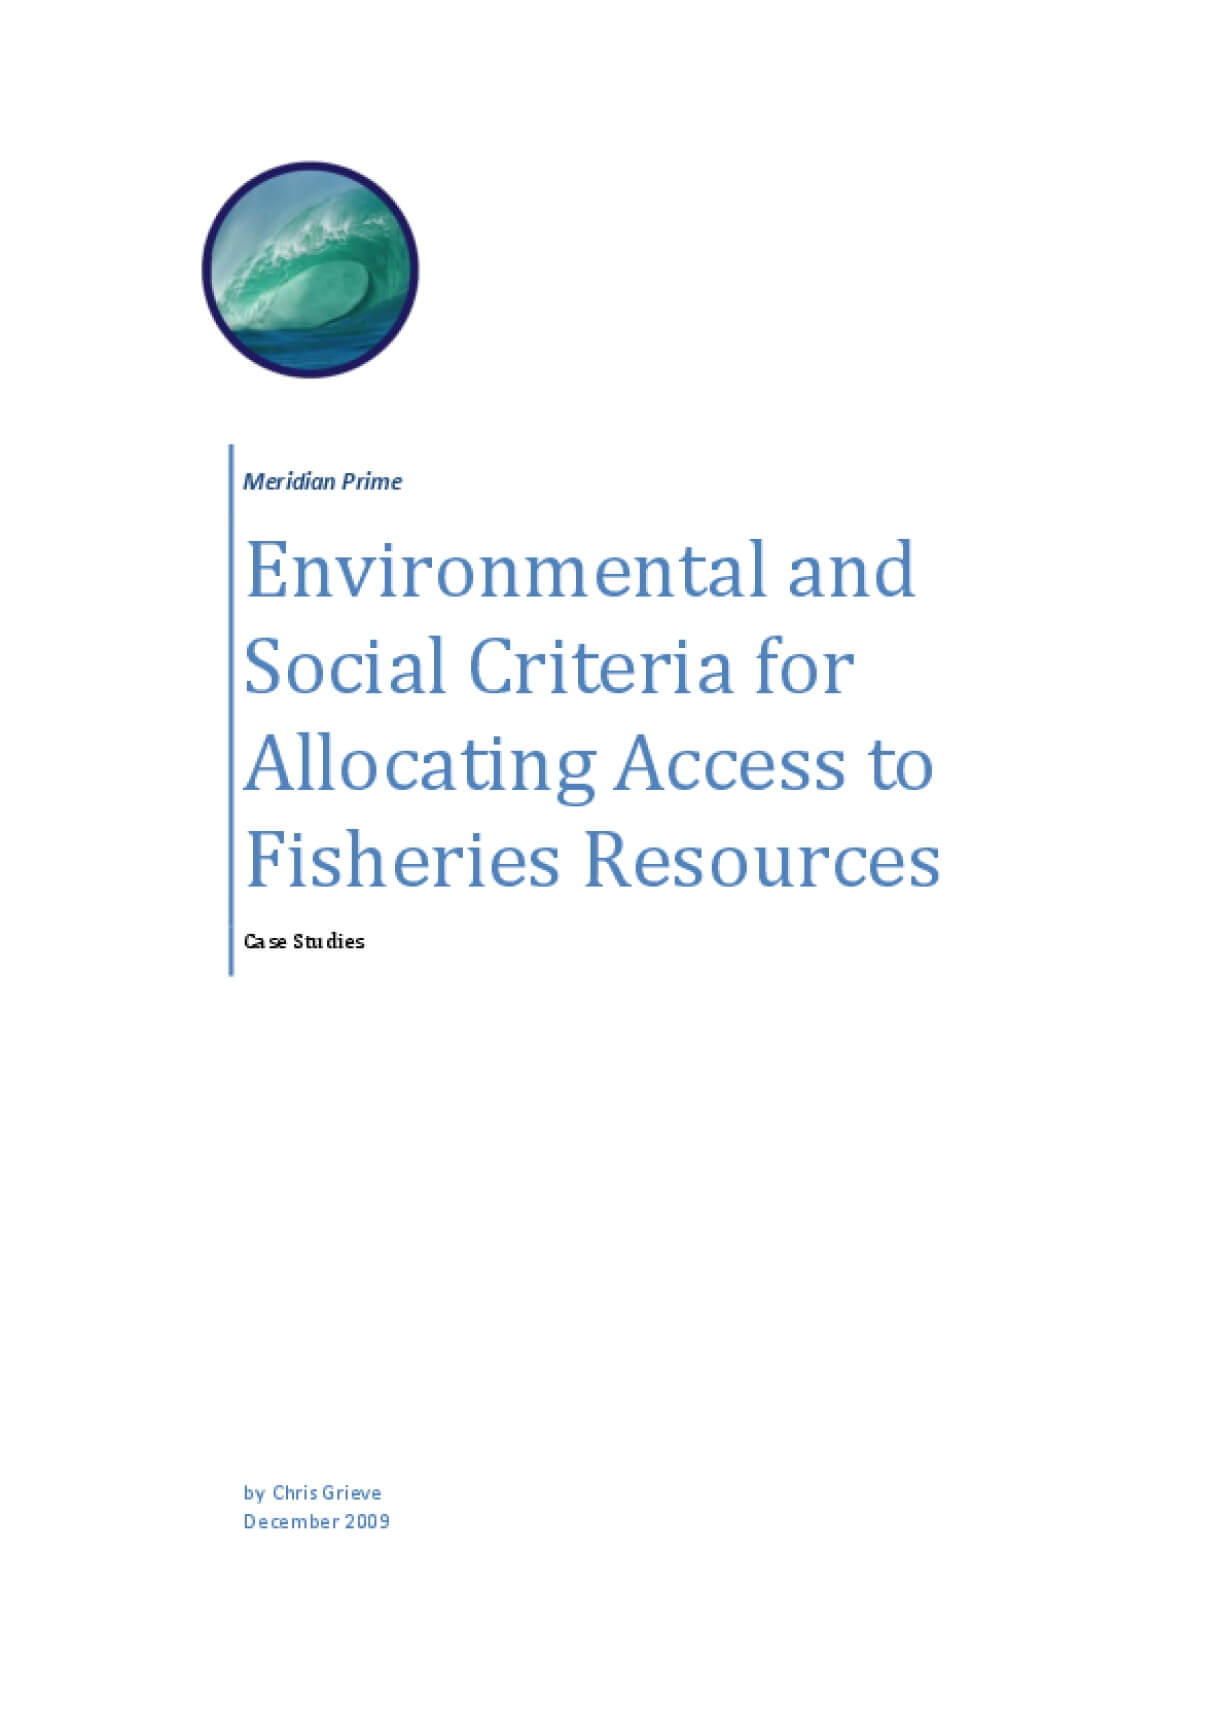 Environmental and Social Criteria for Allocating Access to Fisheries Resources